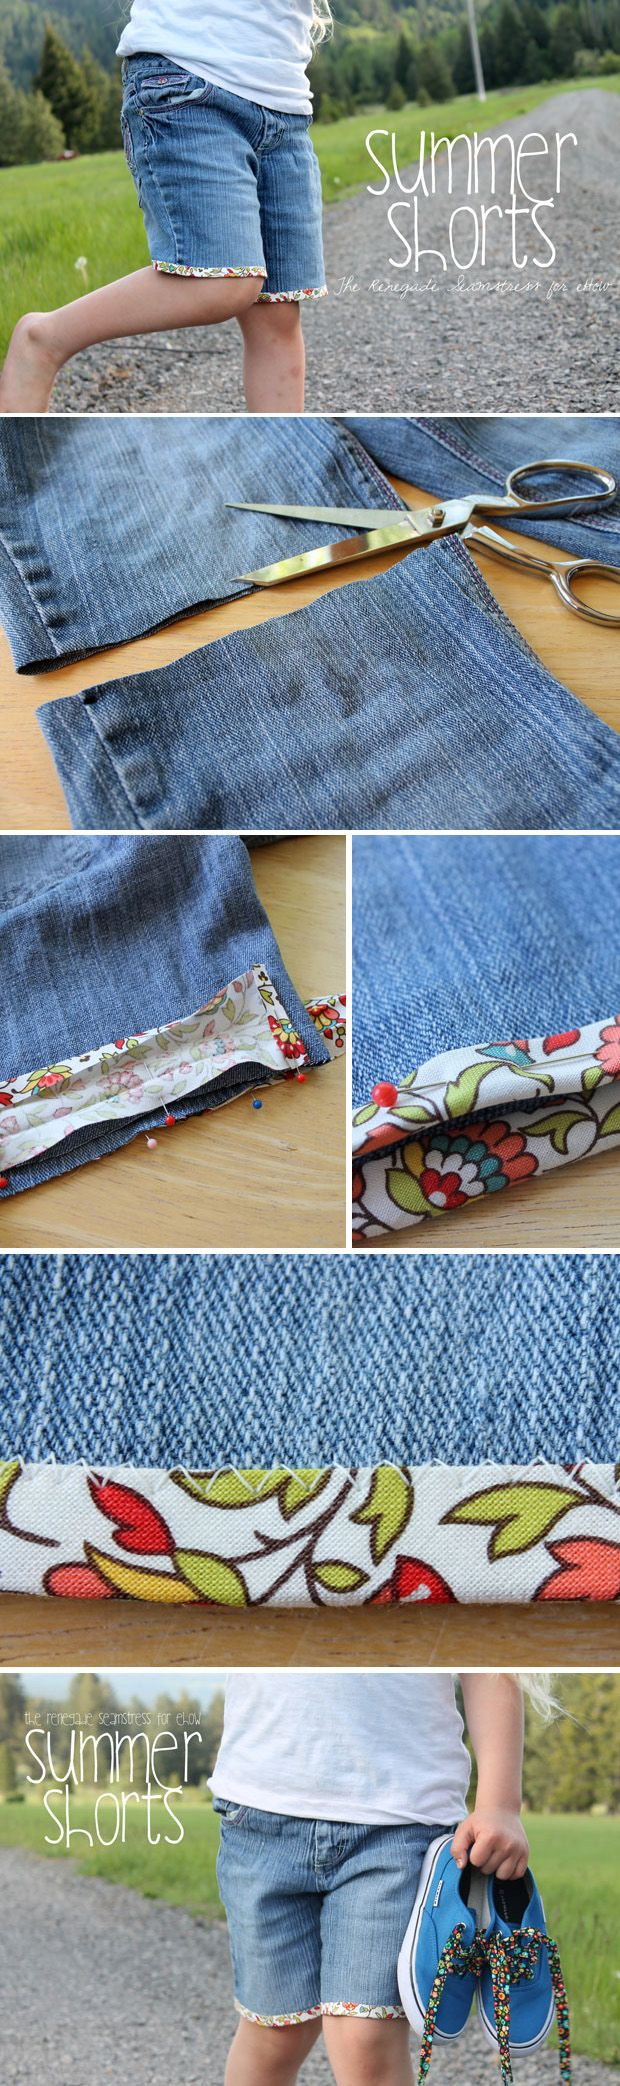 Última foto! Tenis de cadarço florido!!!!   DIY: Transform an old pair of jeans into adorable summer shorts using bias tape.